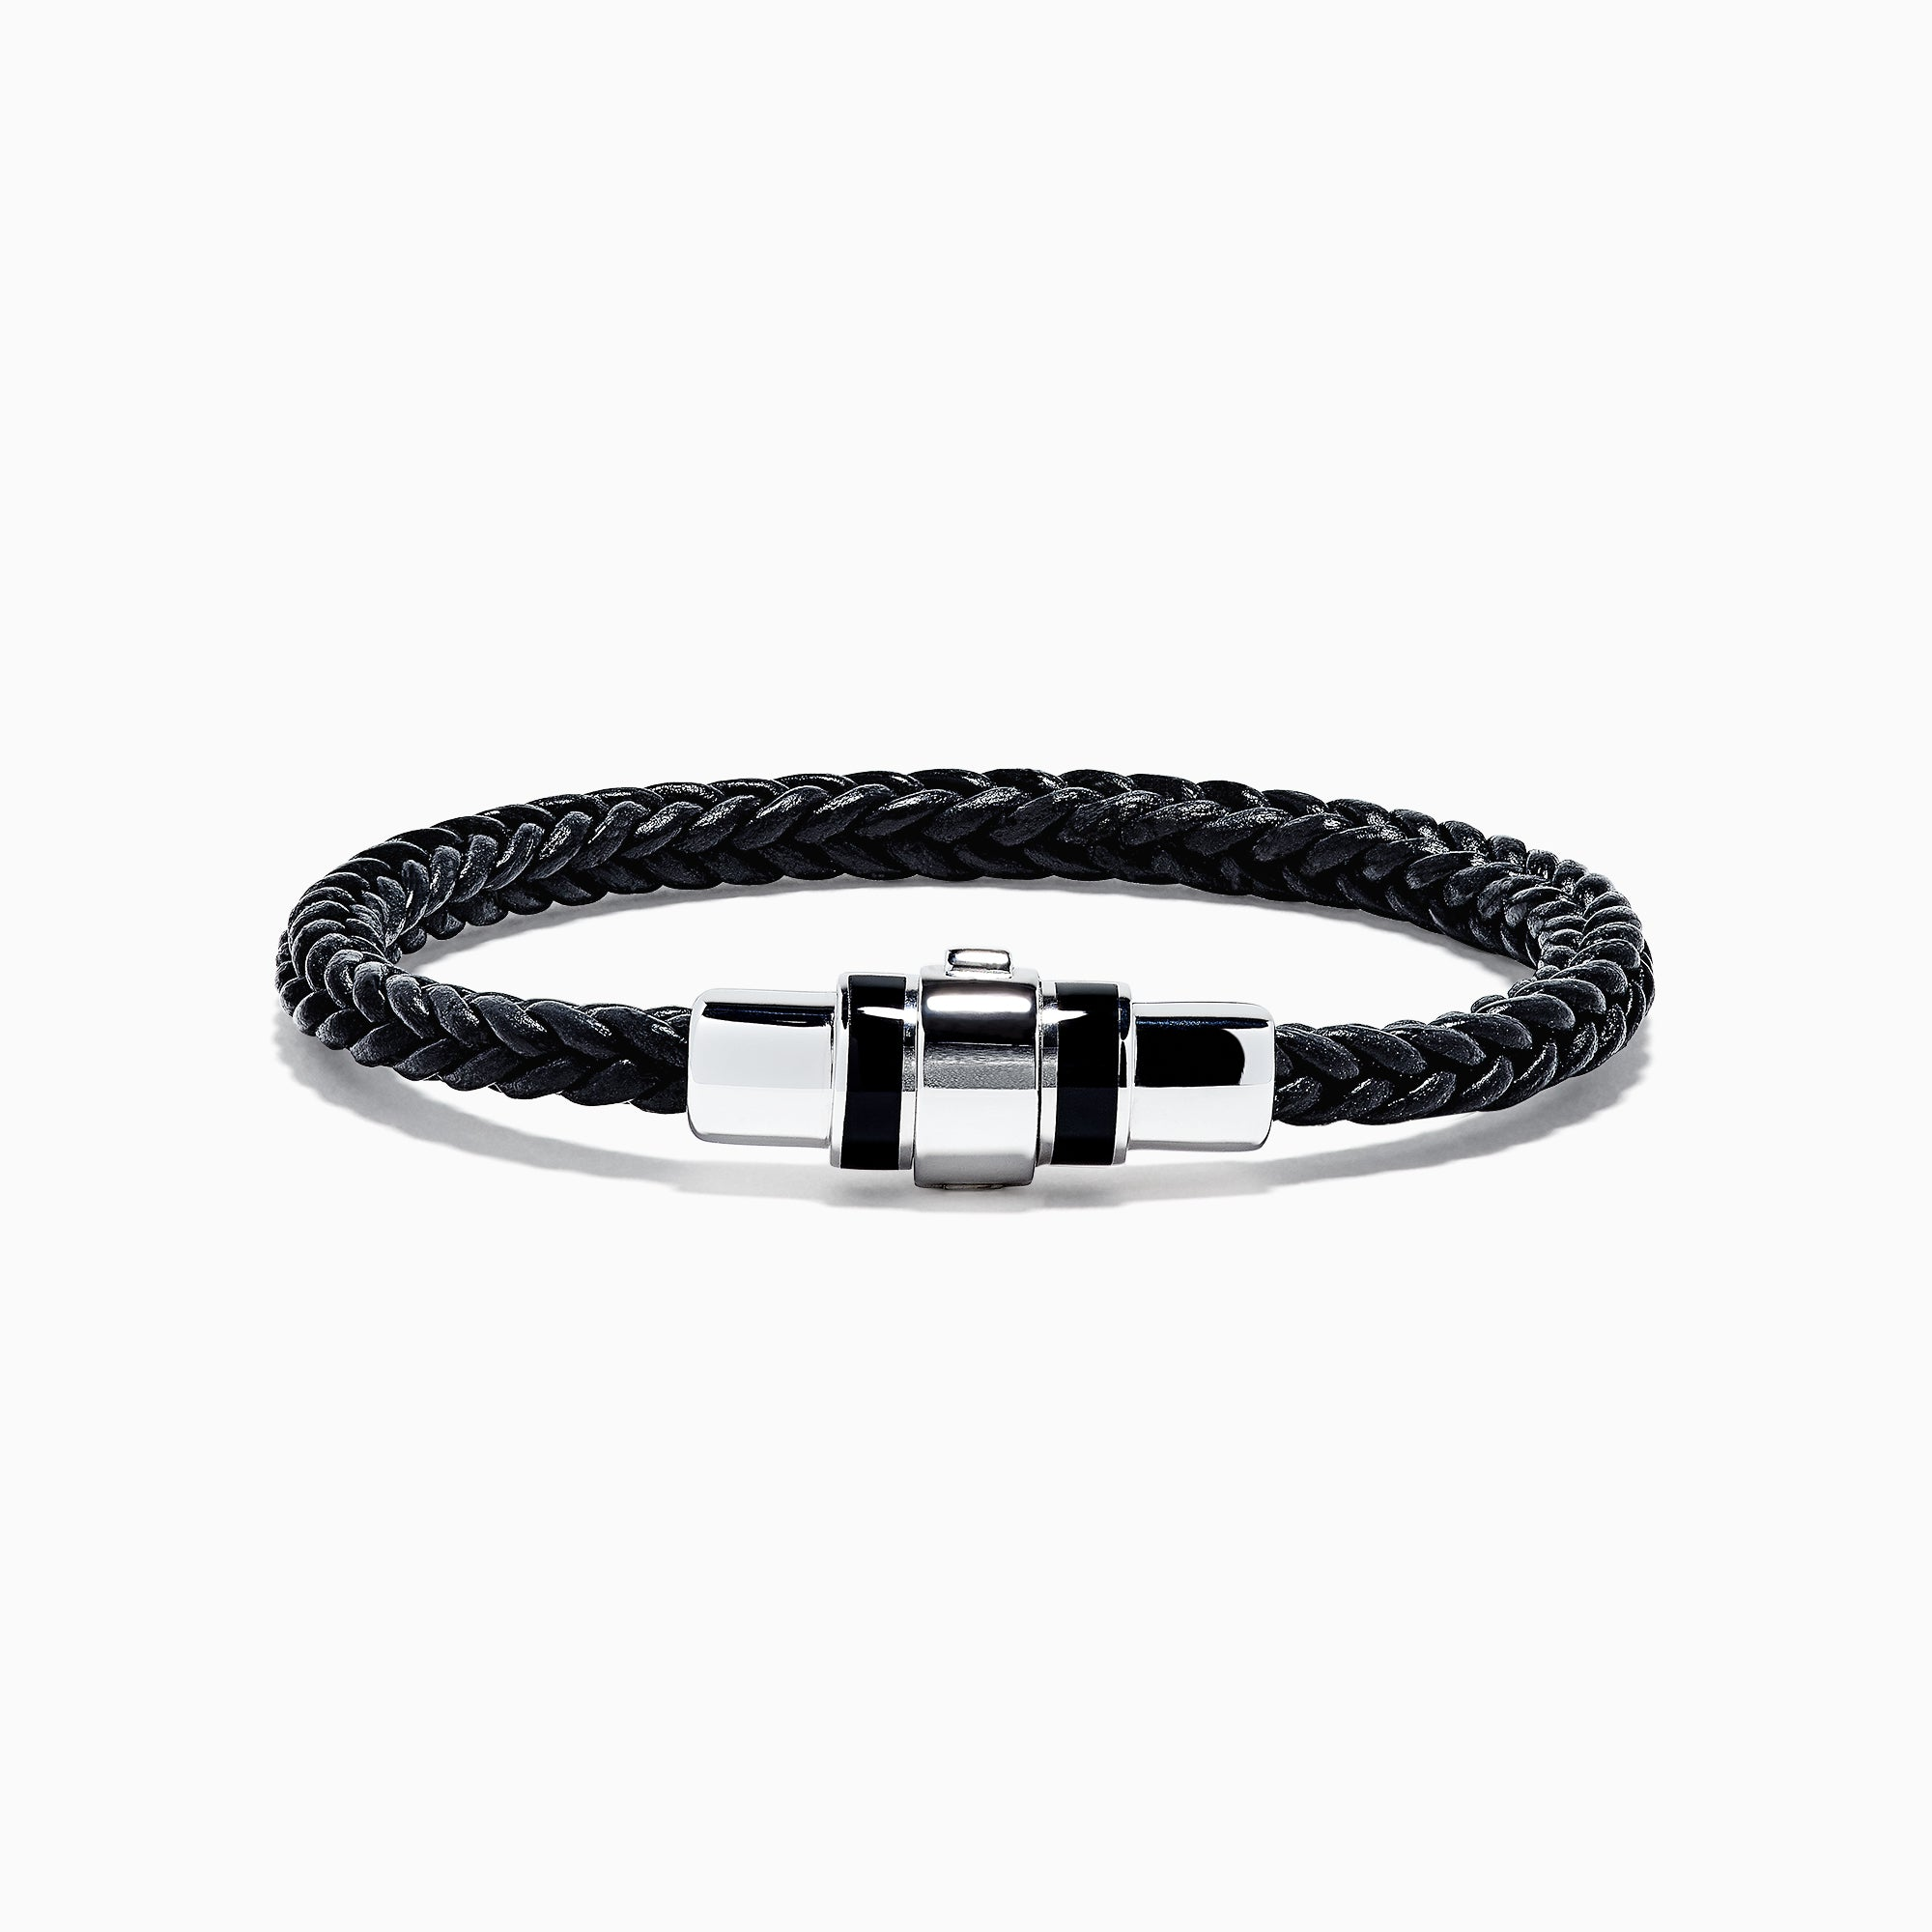 Effy Men's Sterling Silver and Enamel Leather Bracelet